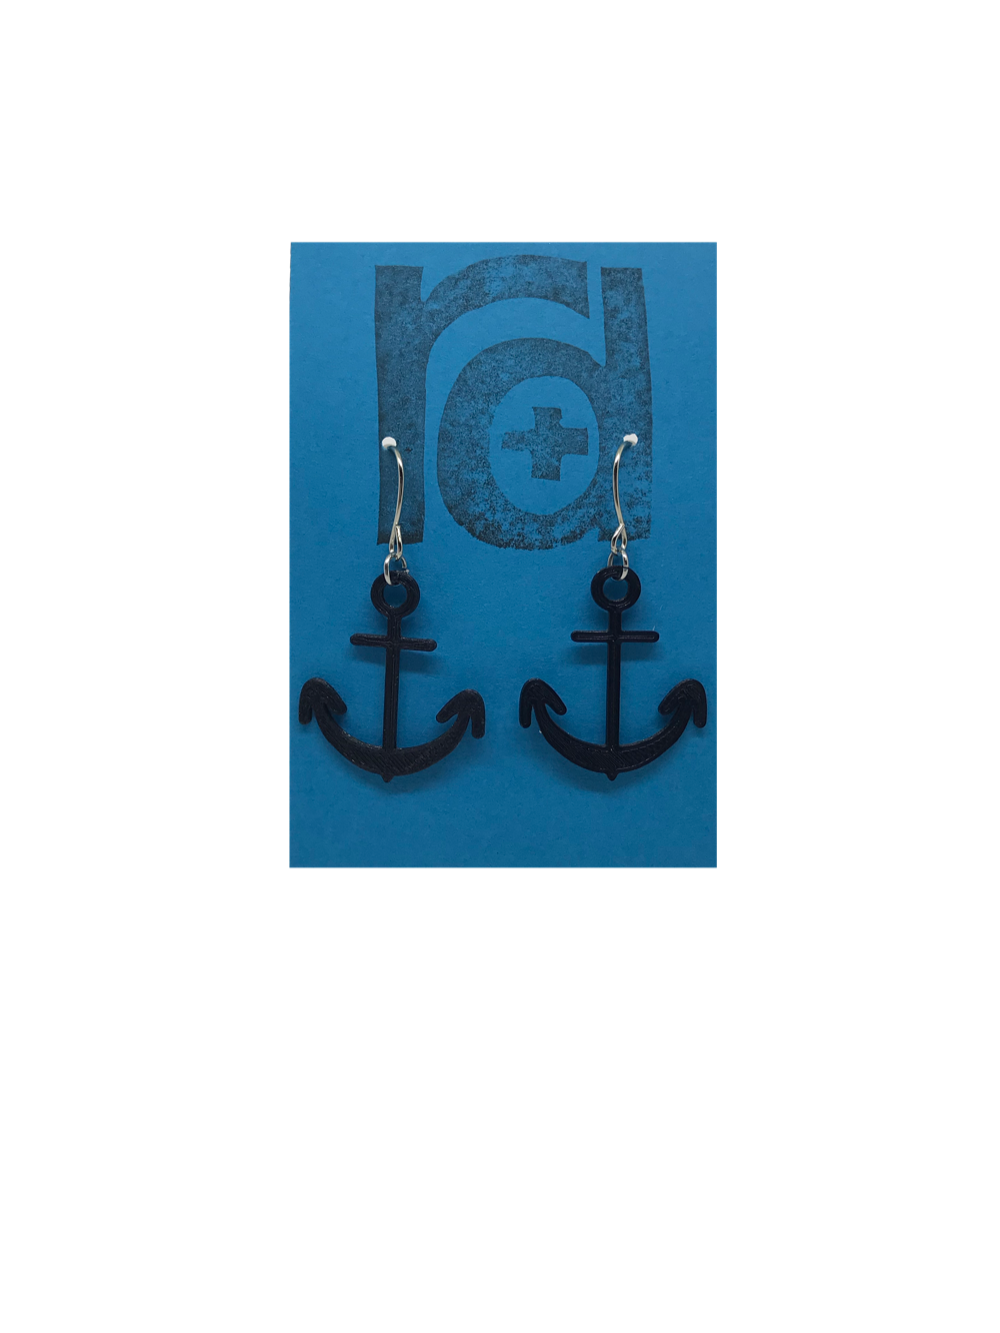 Two earrings hang on a blue earring card. The earrings are 3D printed in a plant based black filament. They are shaped like anchors.